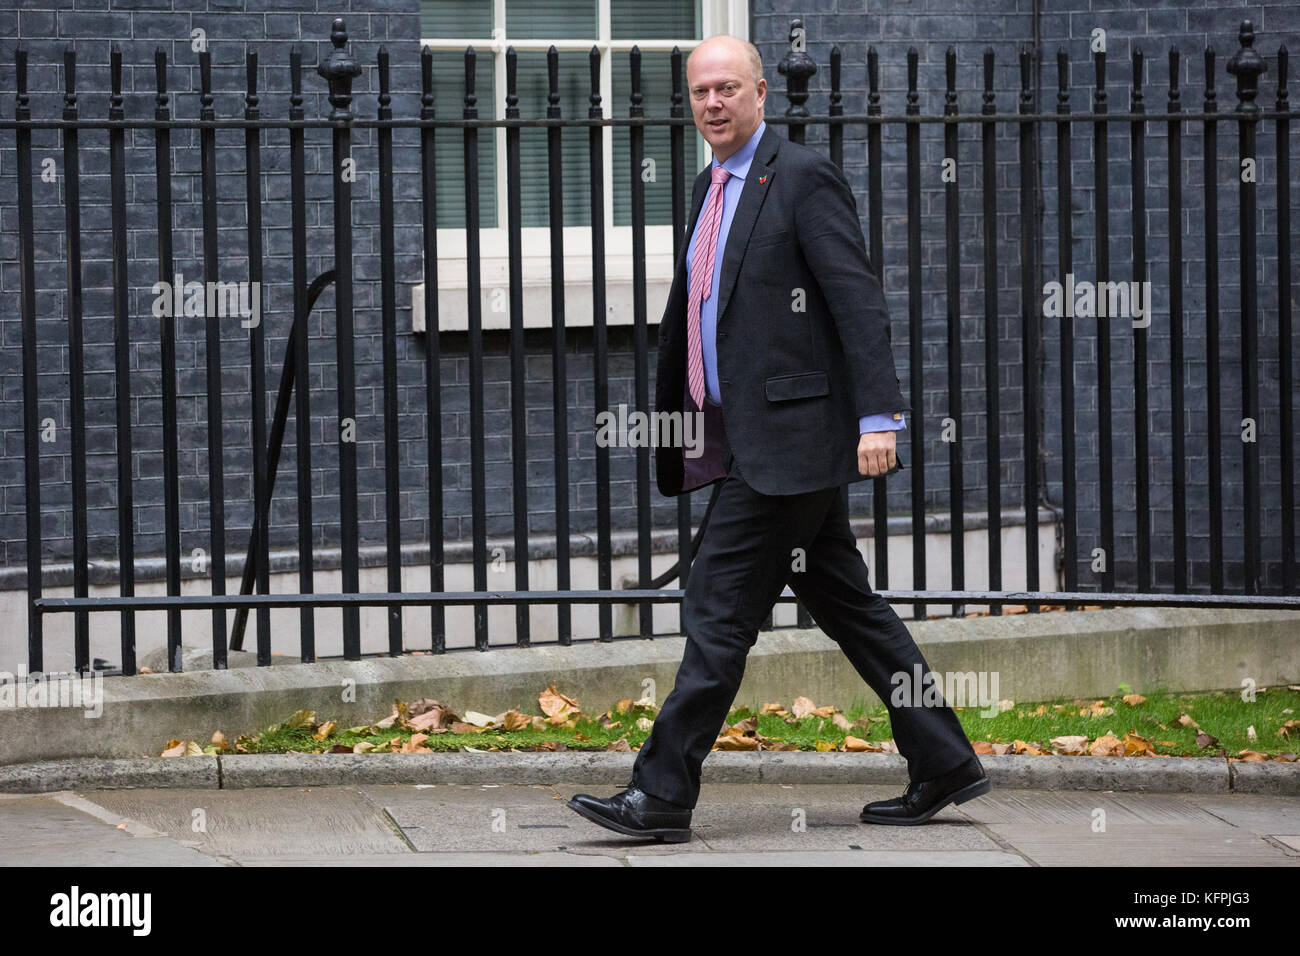 London, UK. 31st Oct, 2017. Chris Grayling MP, Secretary of State for Transport, arrives at 10 Downing Street for - Stock Image